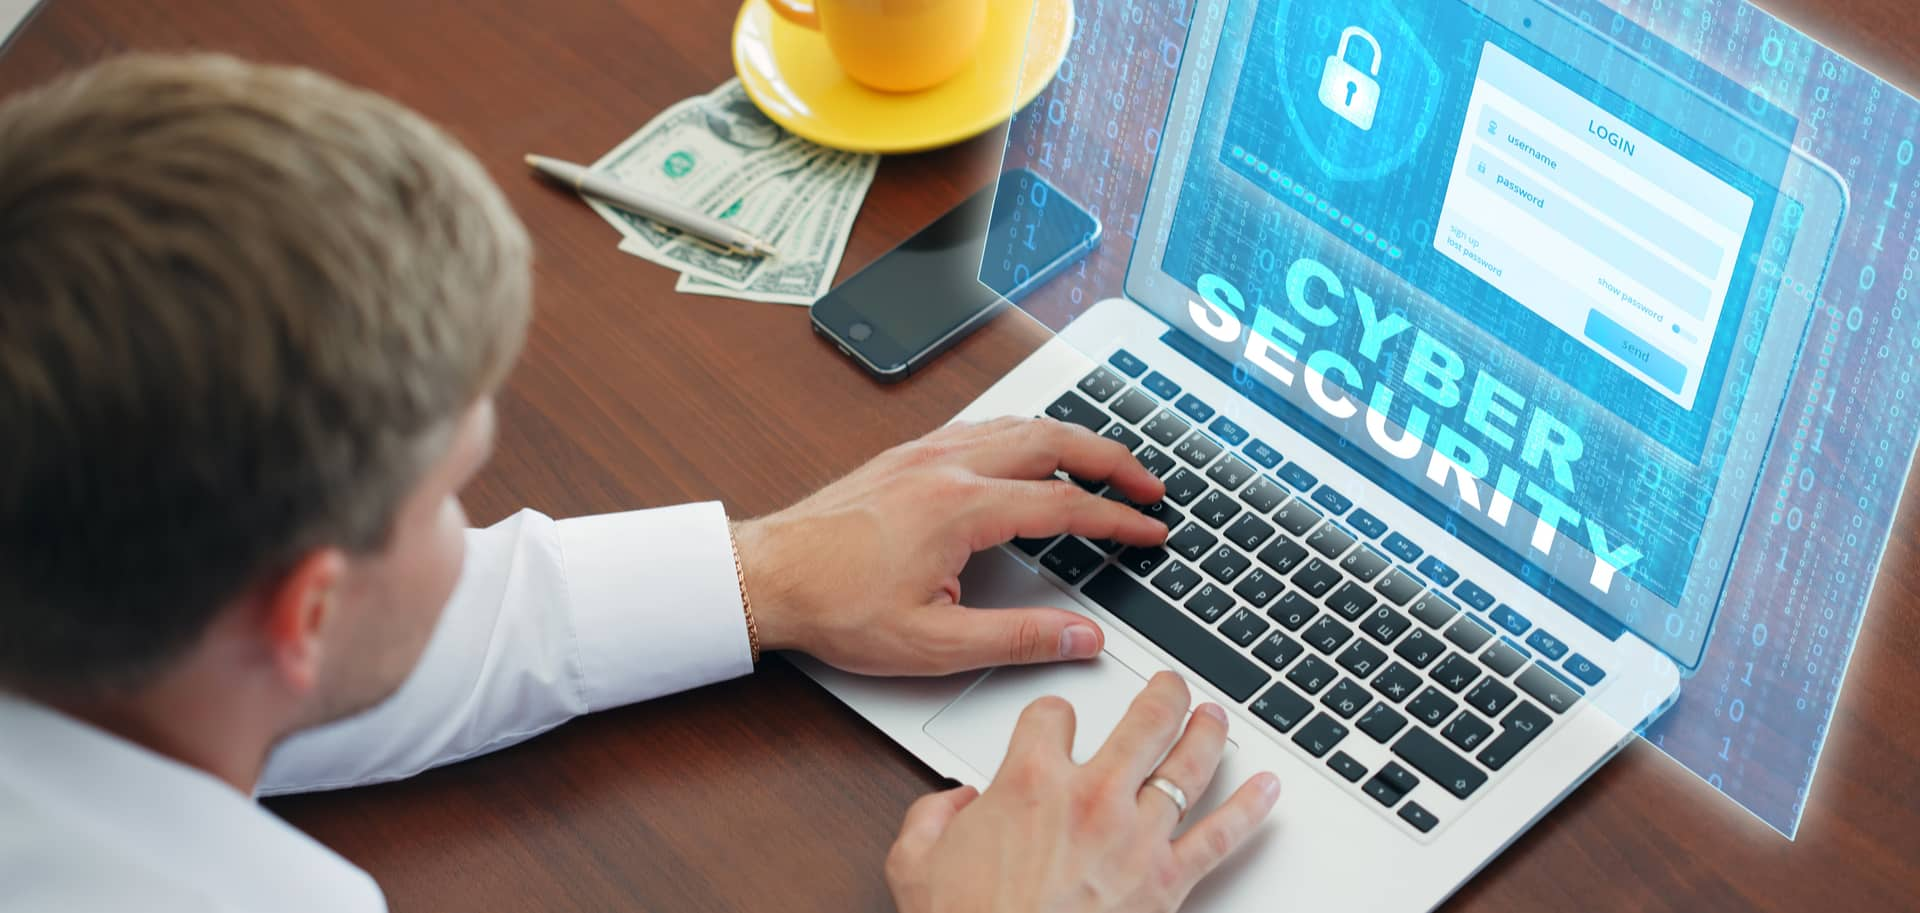 Man working on computer with cyber security image and dollar bills under his coffee mug